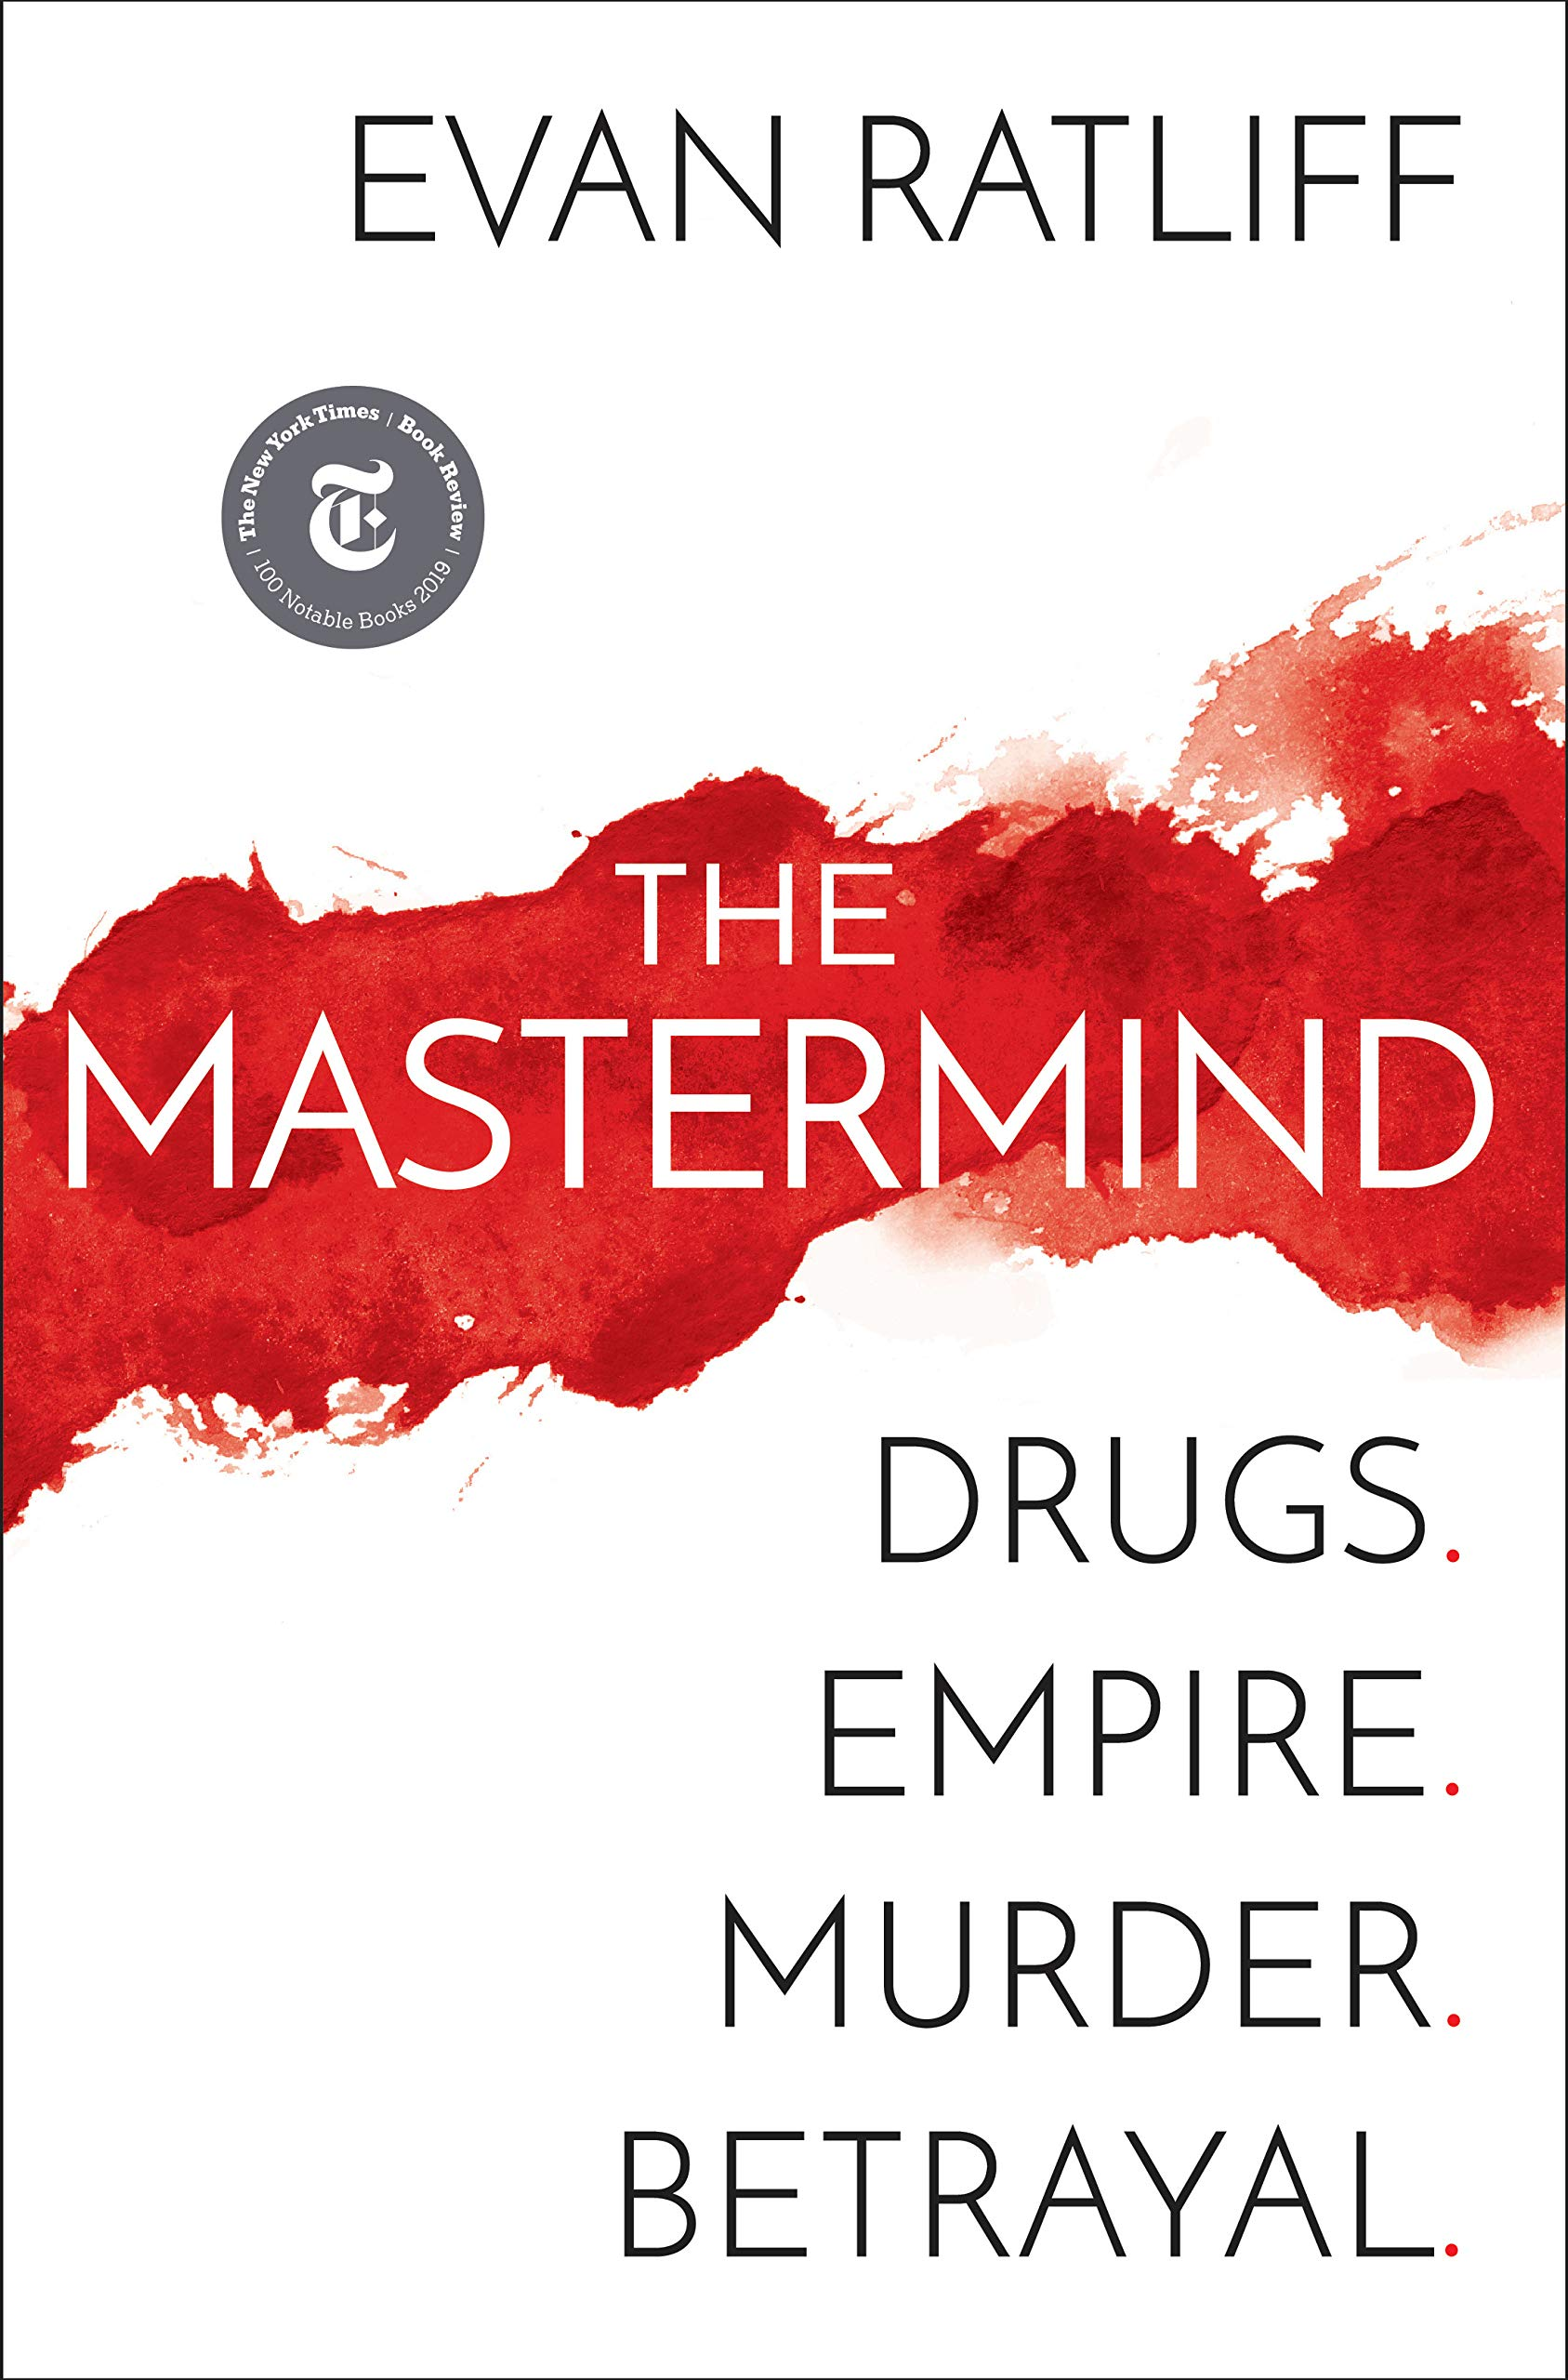 The cover of The Mastermind